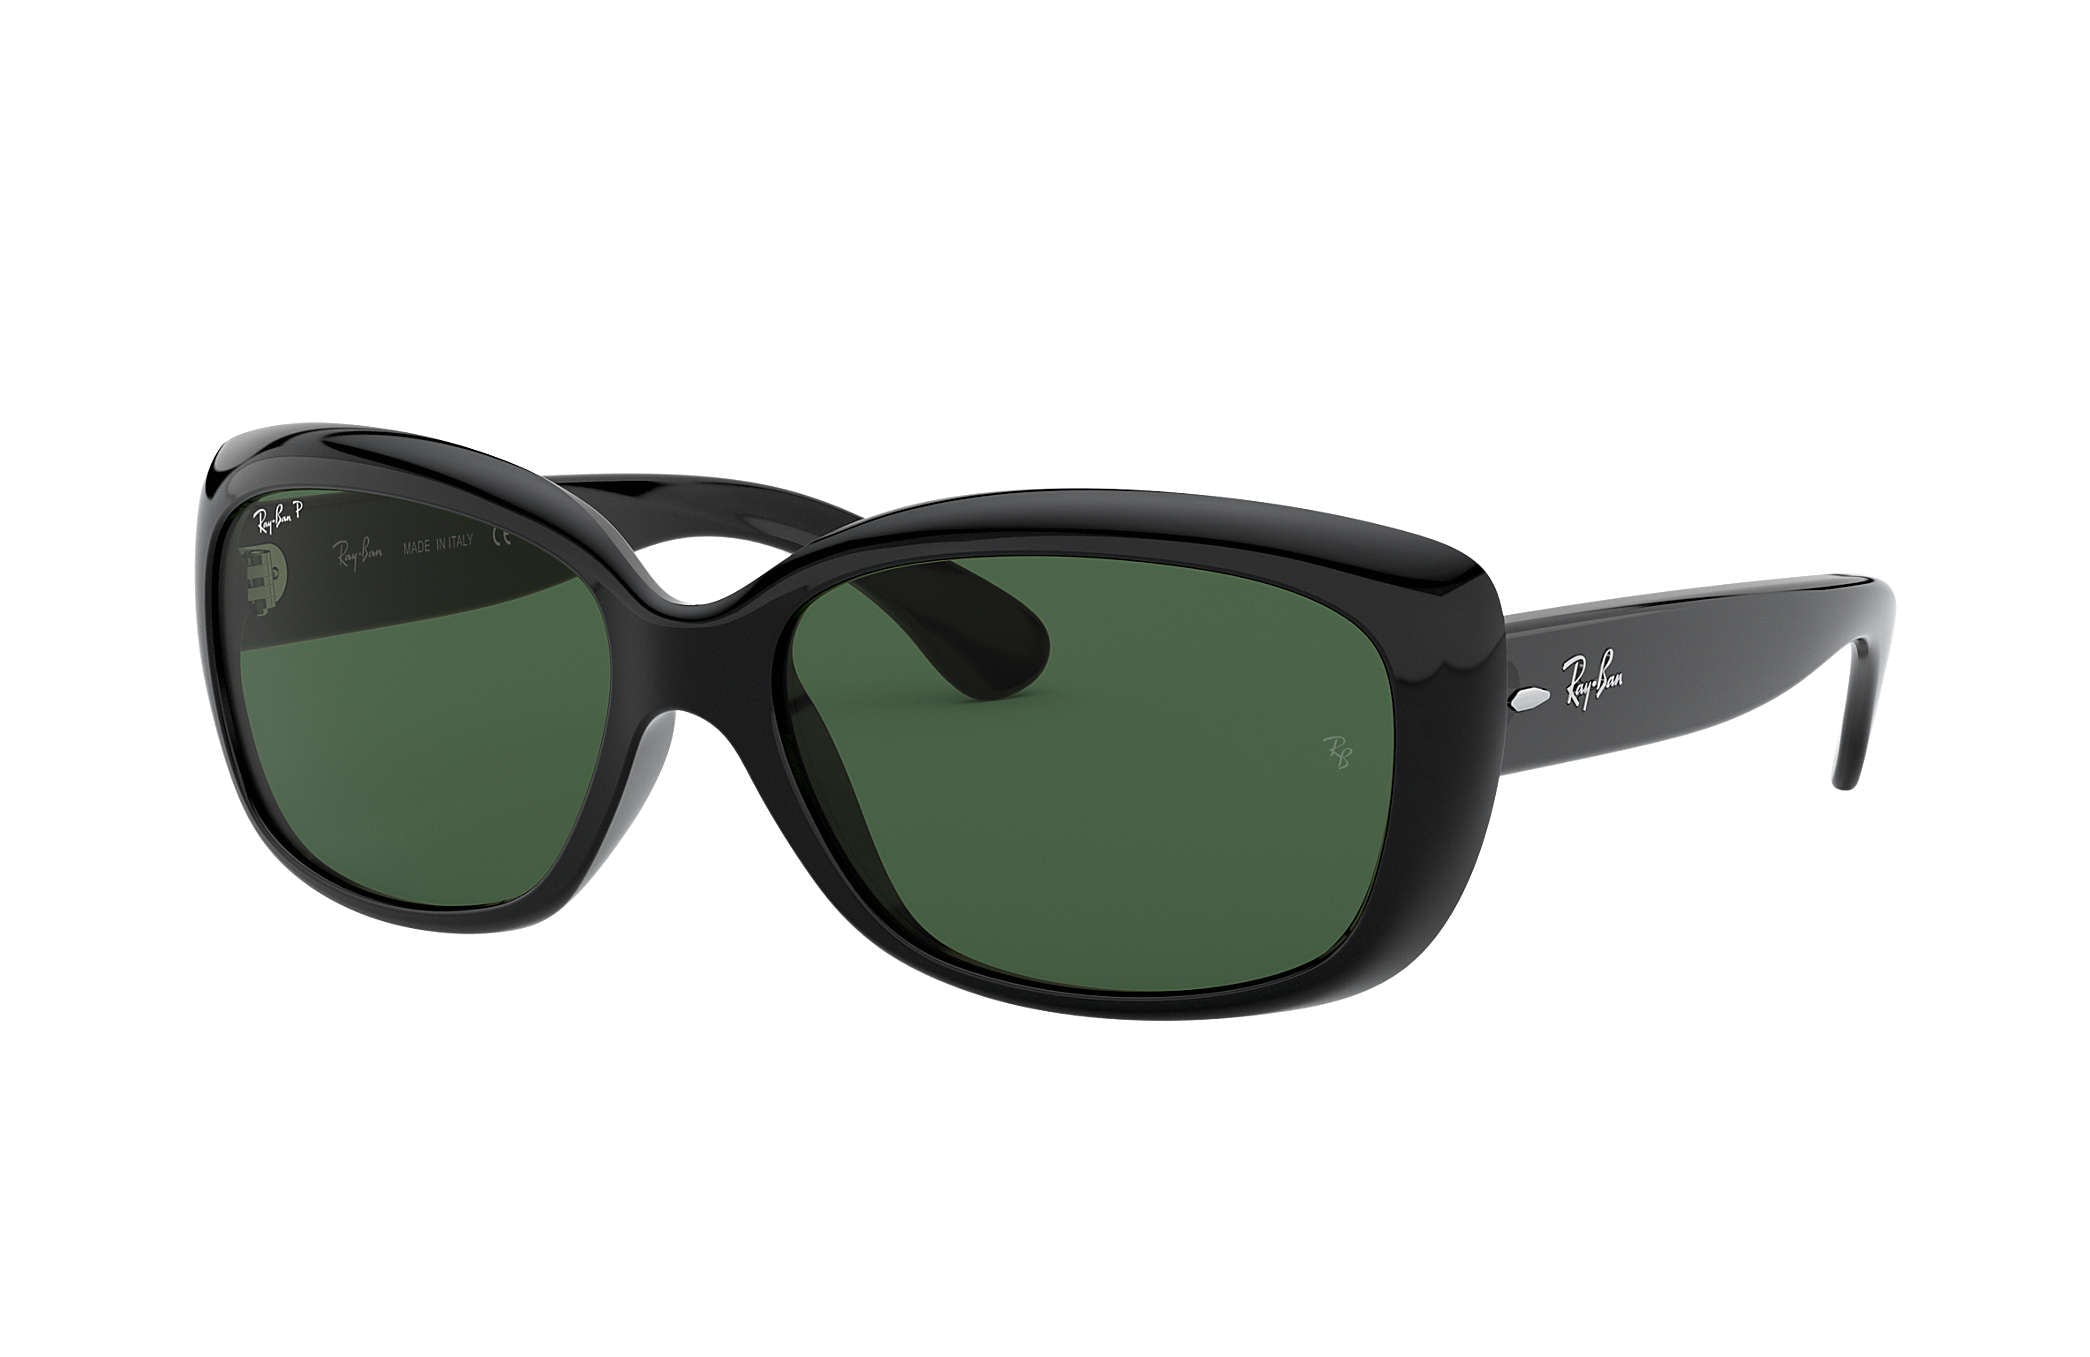 RAY-BAN RB4101 - JACKIE OHH SUNGLASSES - OPTICIWEAR.COM